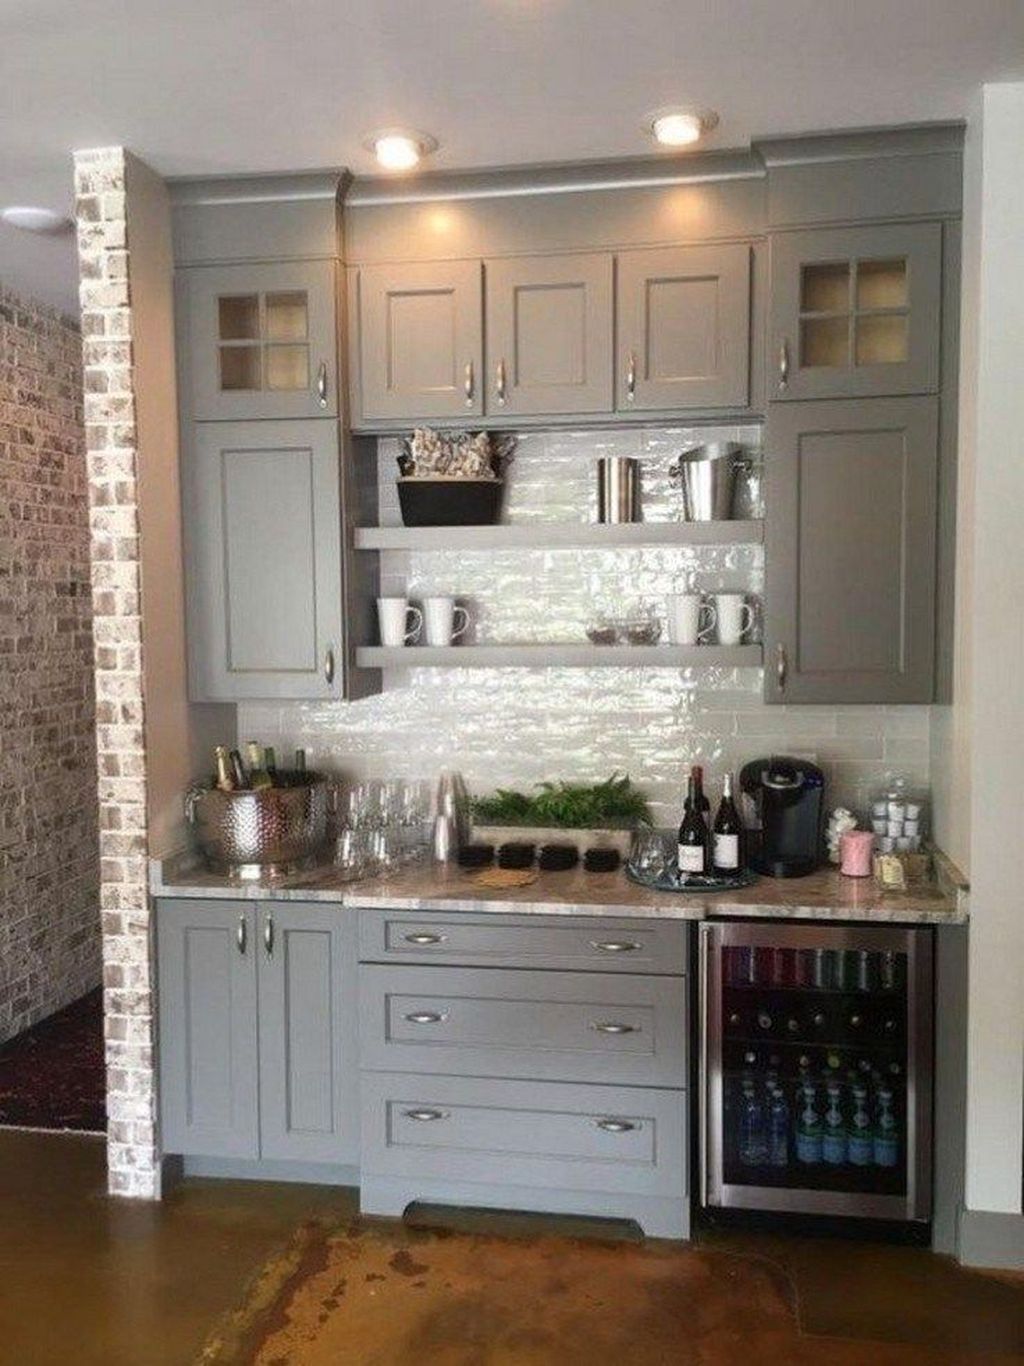 42 adorable small kitchen remodel design ideas on a budget